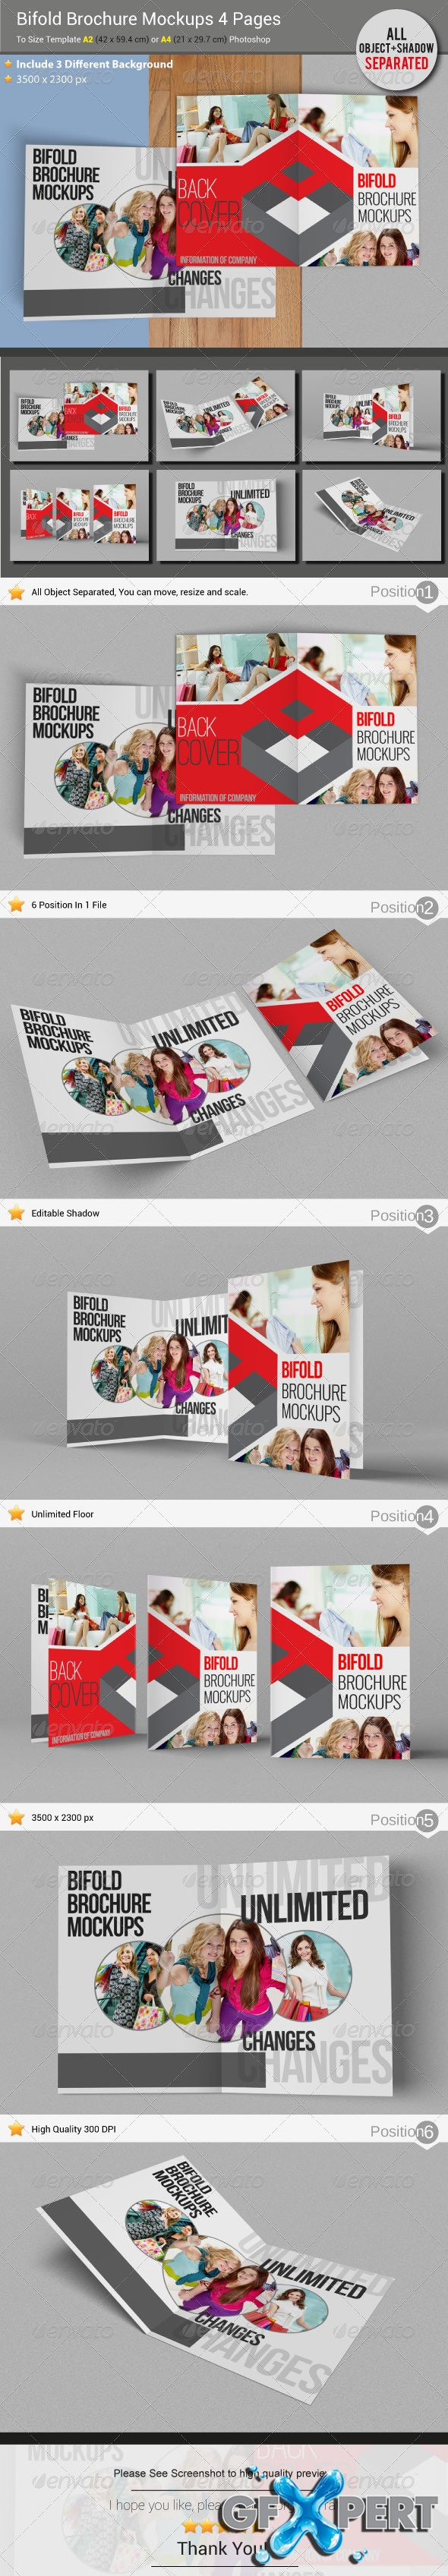 Free GraphicRiver - Brochure Mockups 4 Pages download